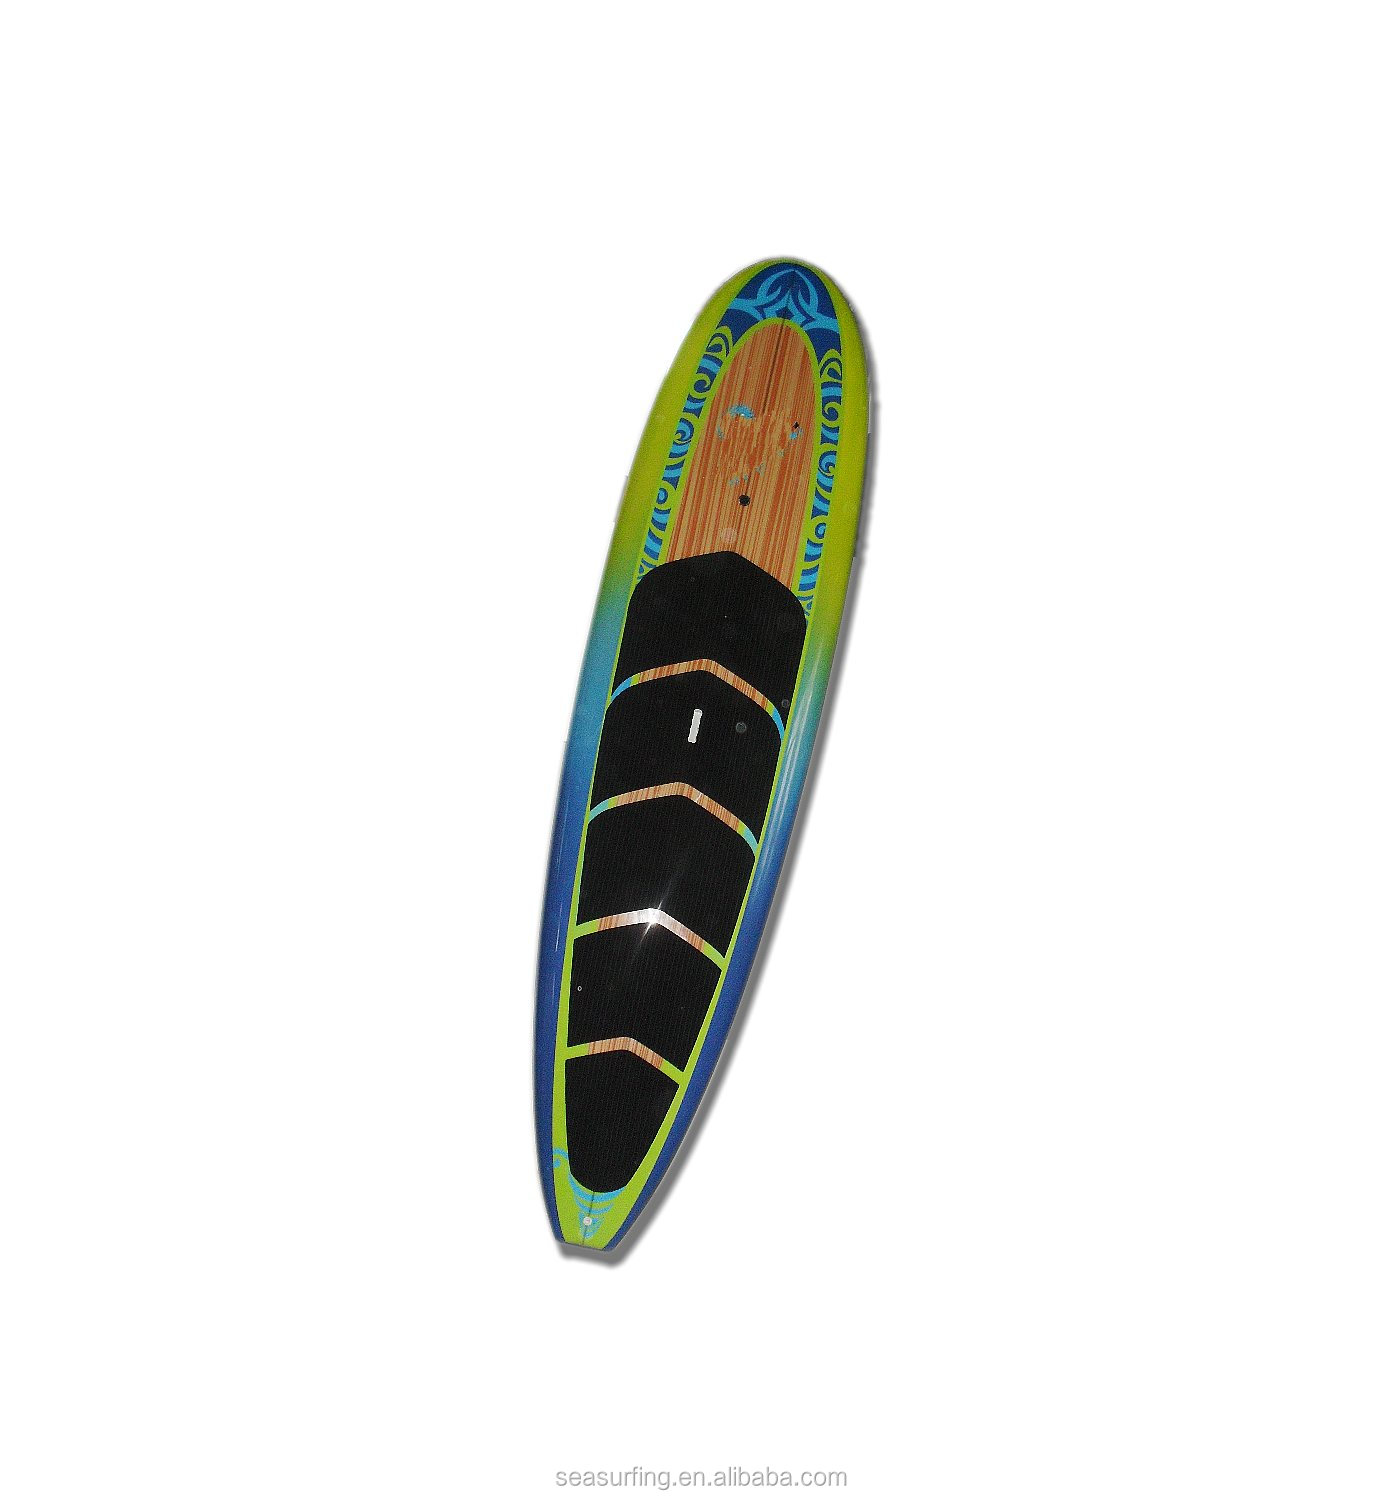 2014 hot selling !~green & blue design customized bamboo supboard/grey Camouflage EVA deck grip sup board surf paddle board